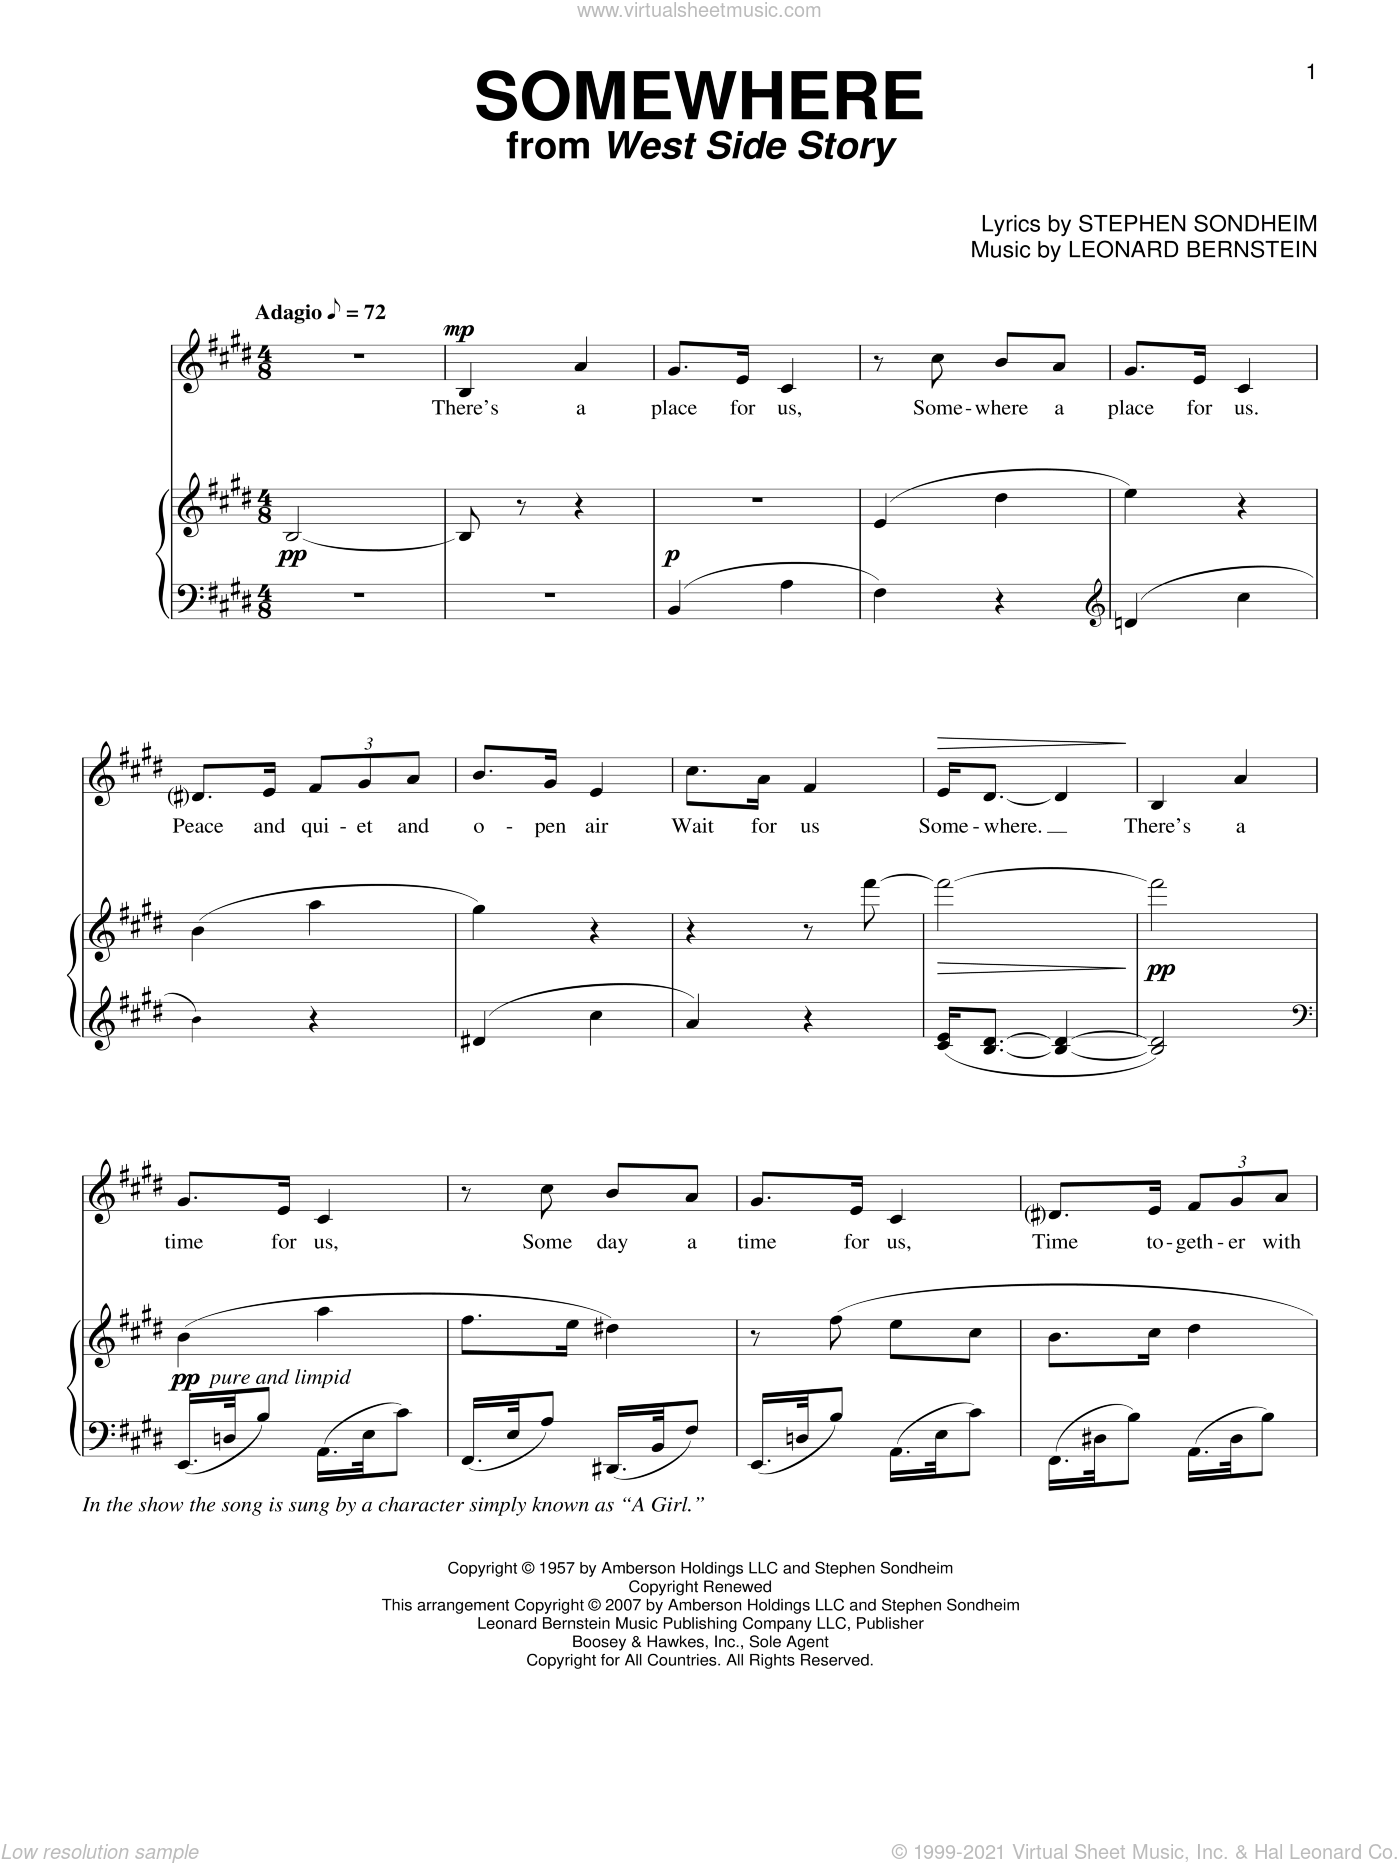 Somewhere sheet music for voice and piano by Leonard Bernstein, West Side Story (Musical), Richard Walters and Stephen Sondheim, intermediate skill level